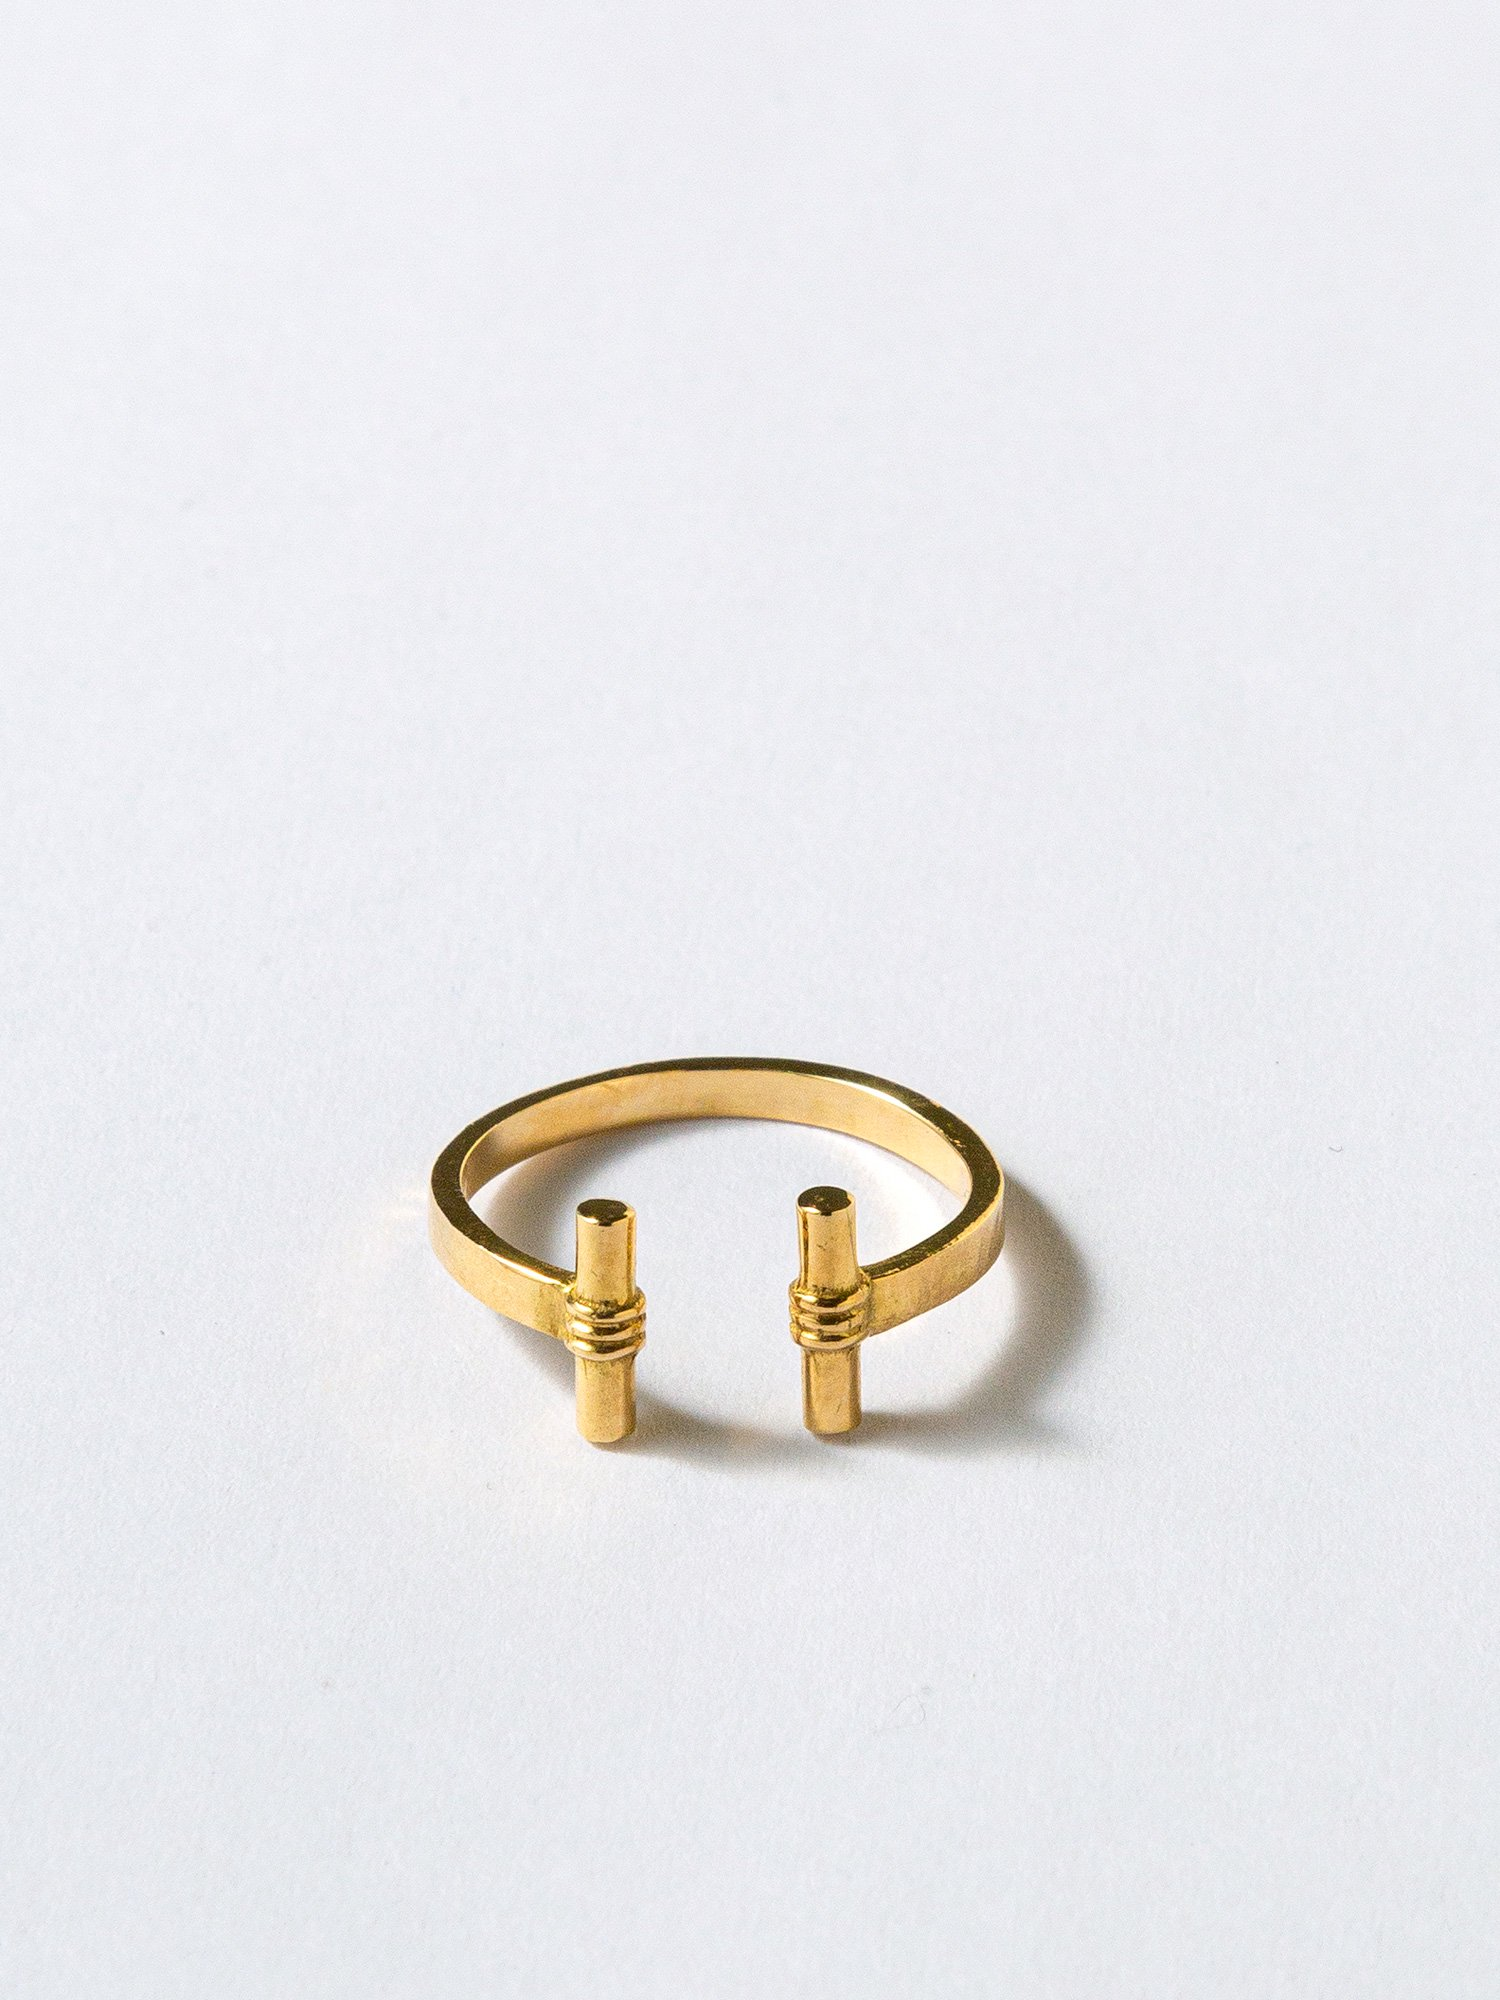 HELIOS / Roman open ring